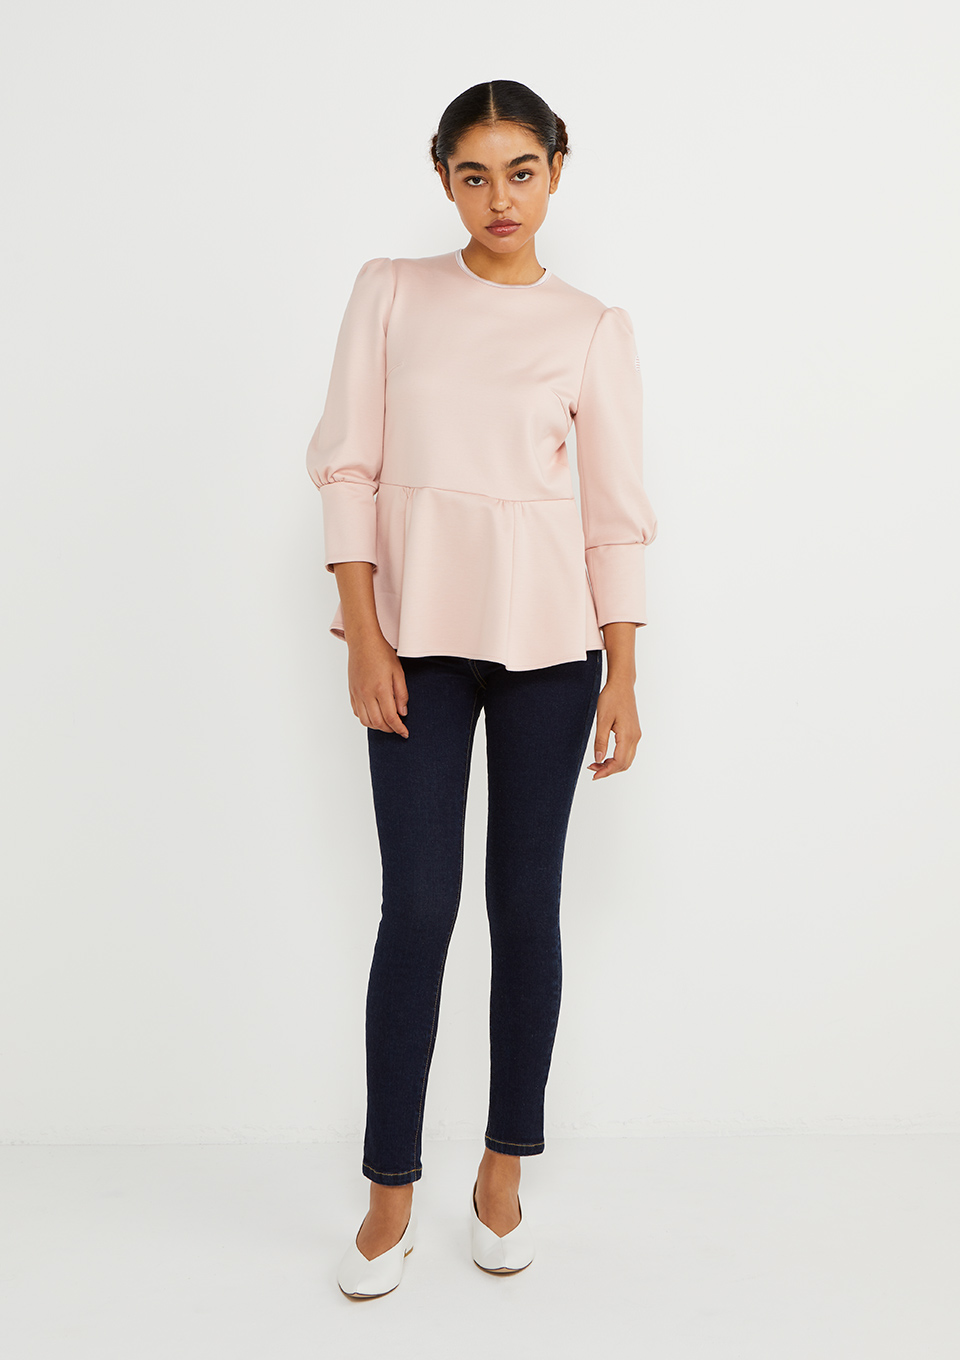 SWEAT PEPLUM TOP